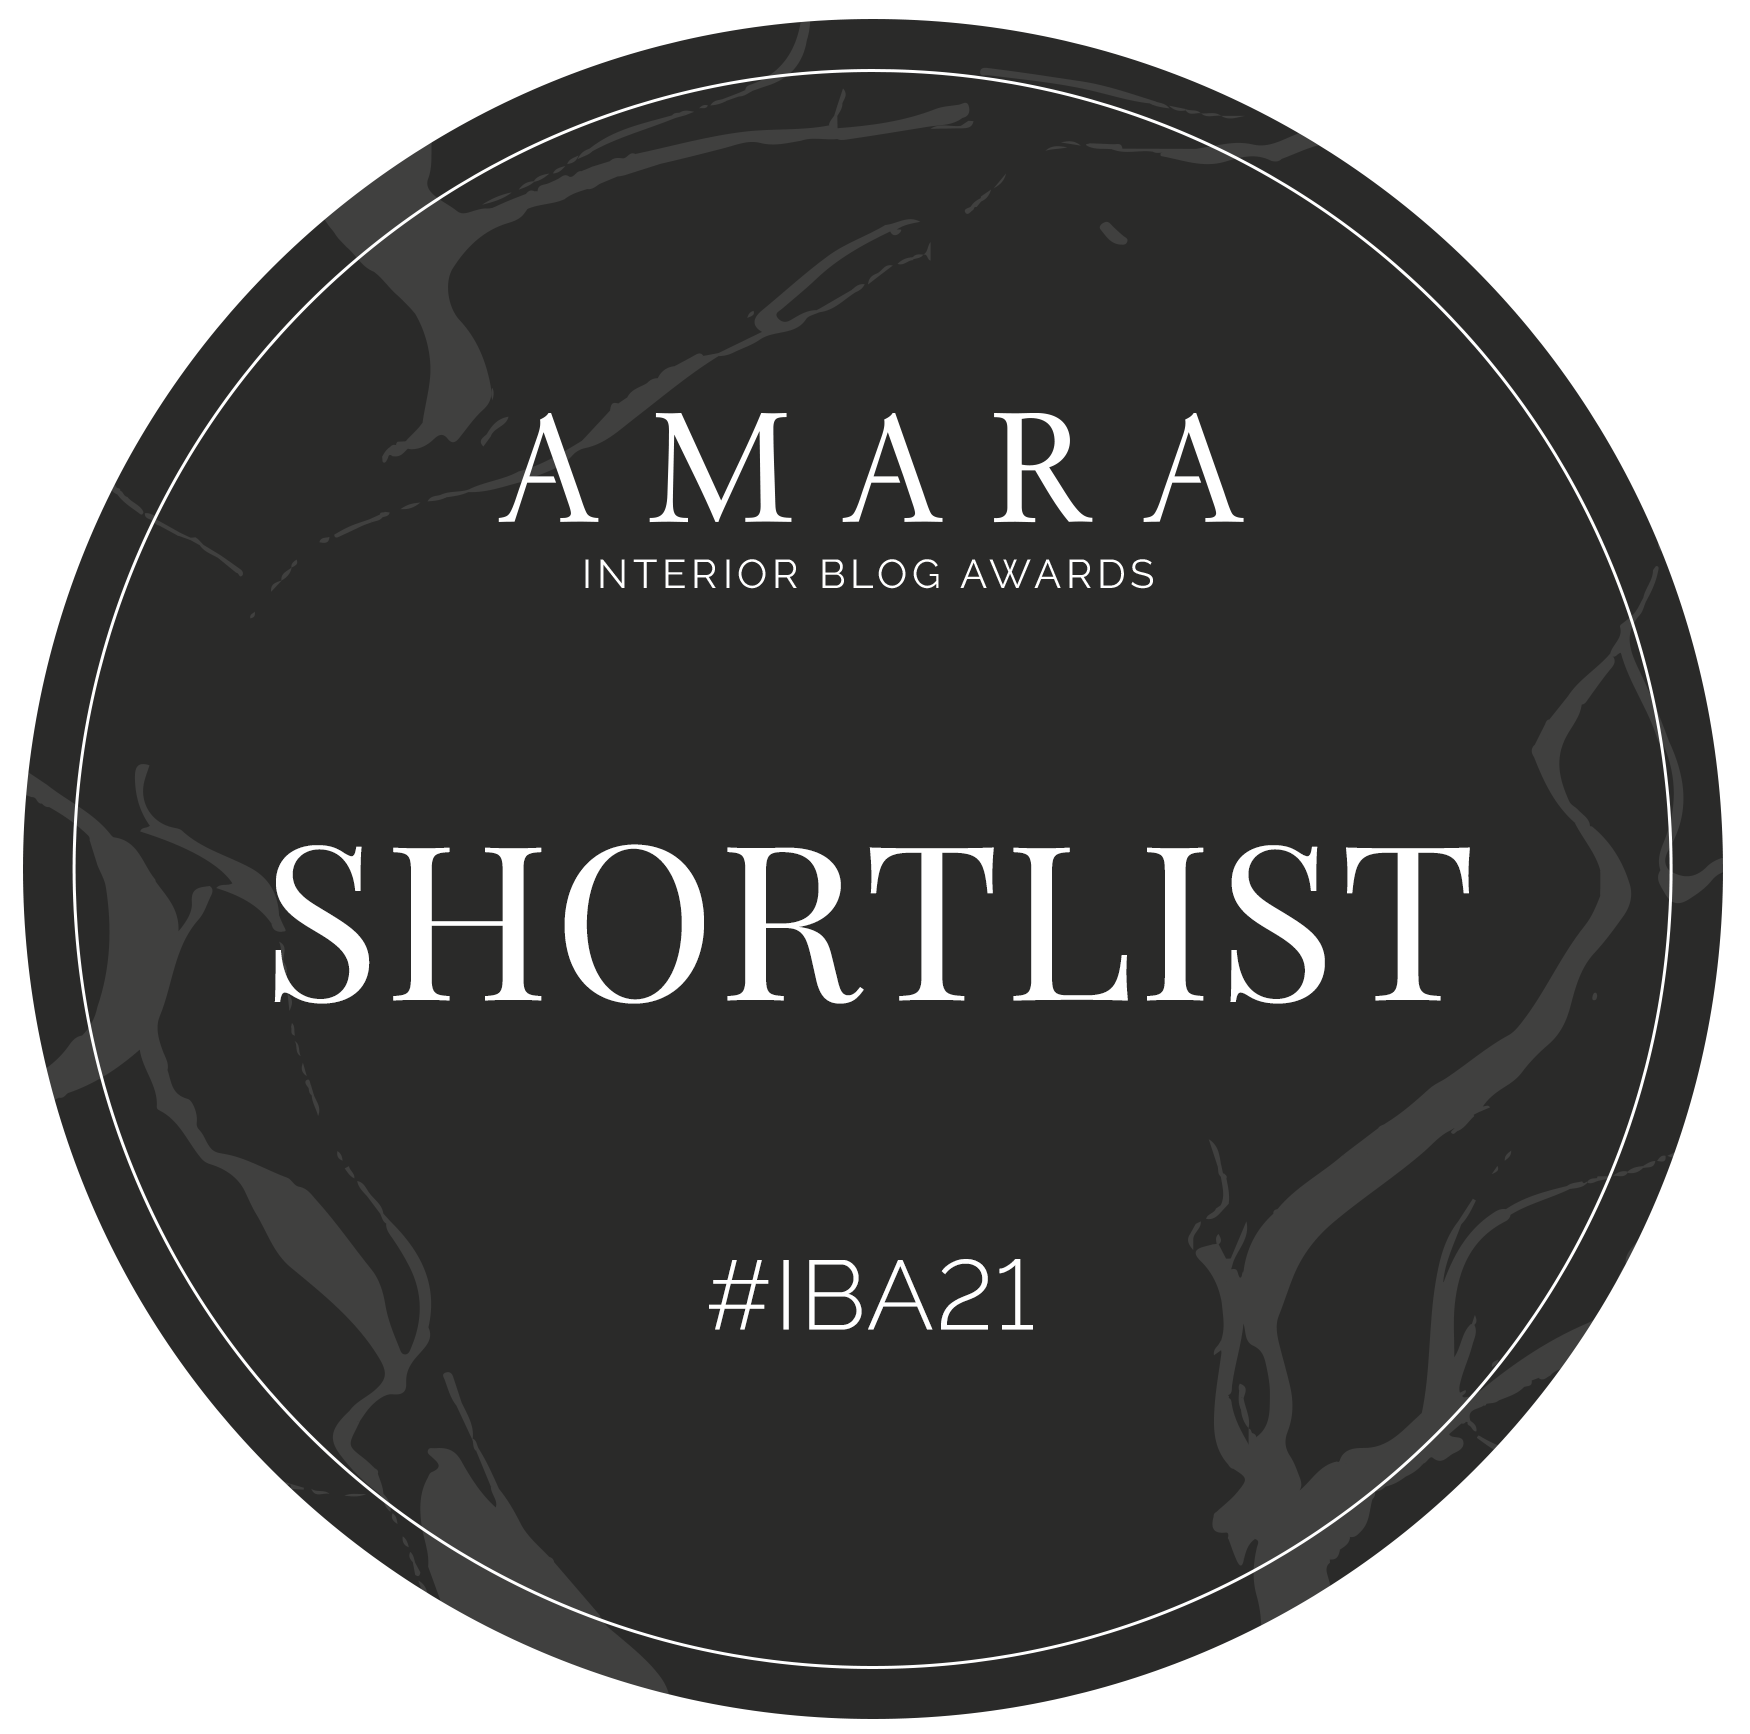 Over the moon this blog is now on the short list for an Amara award!